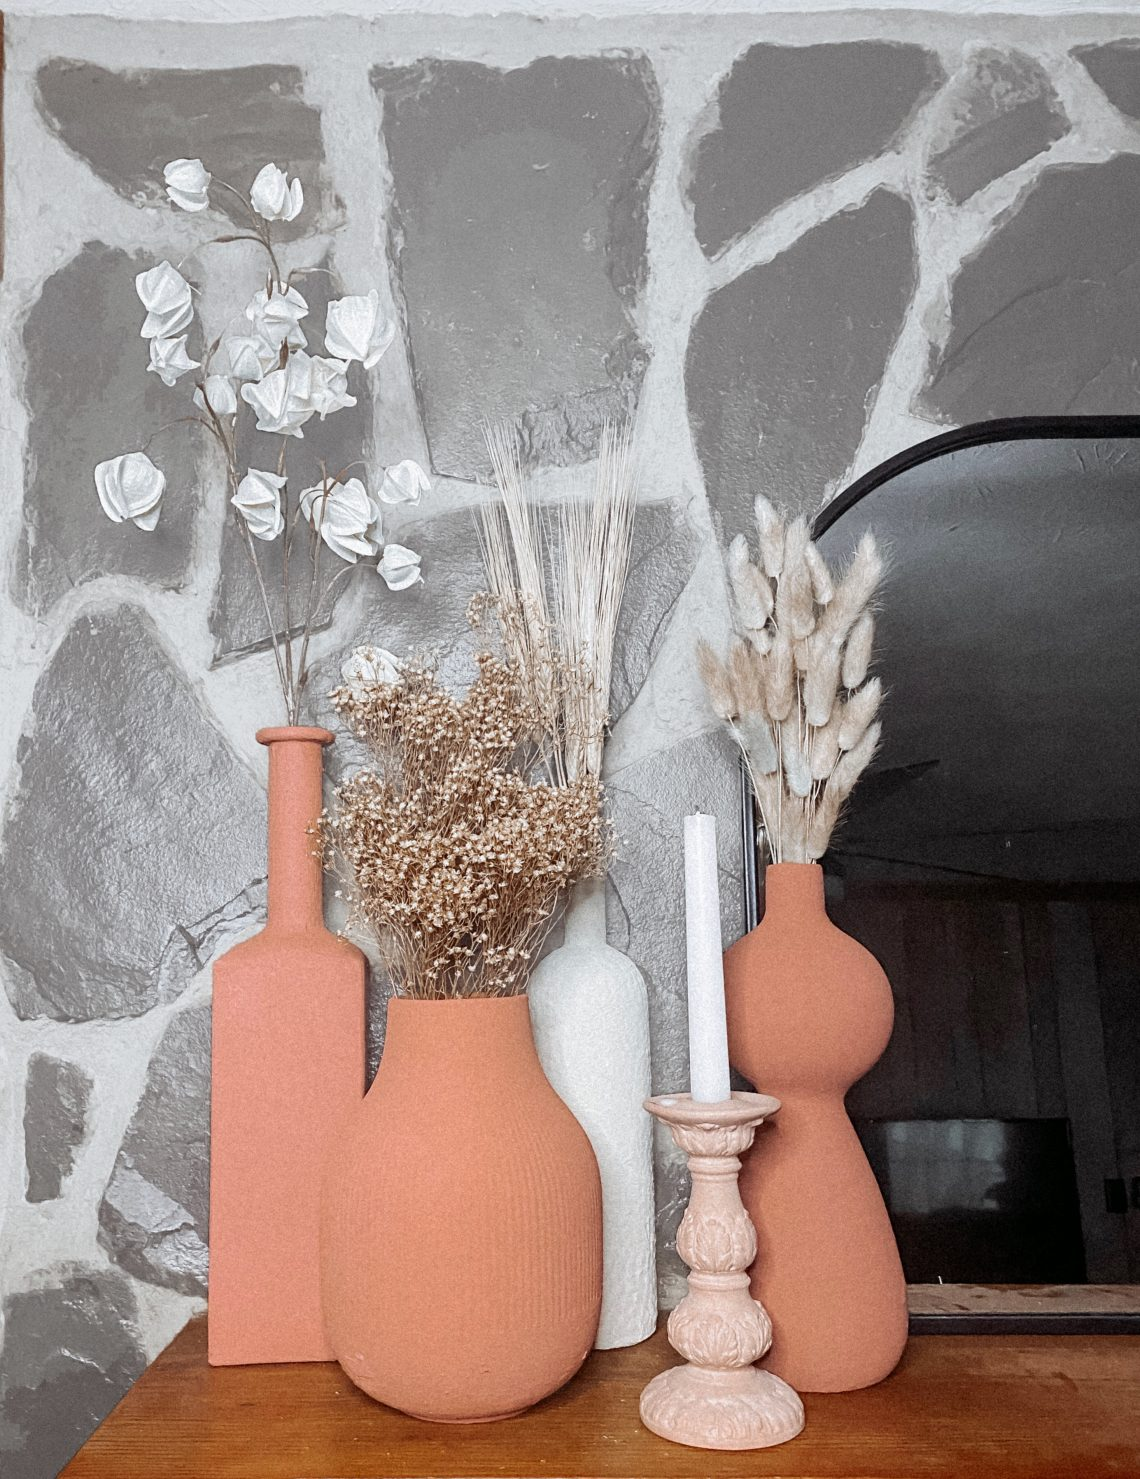 Terracotta and Cream vases on a mantle with dried plants